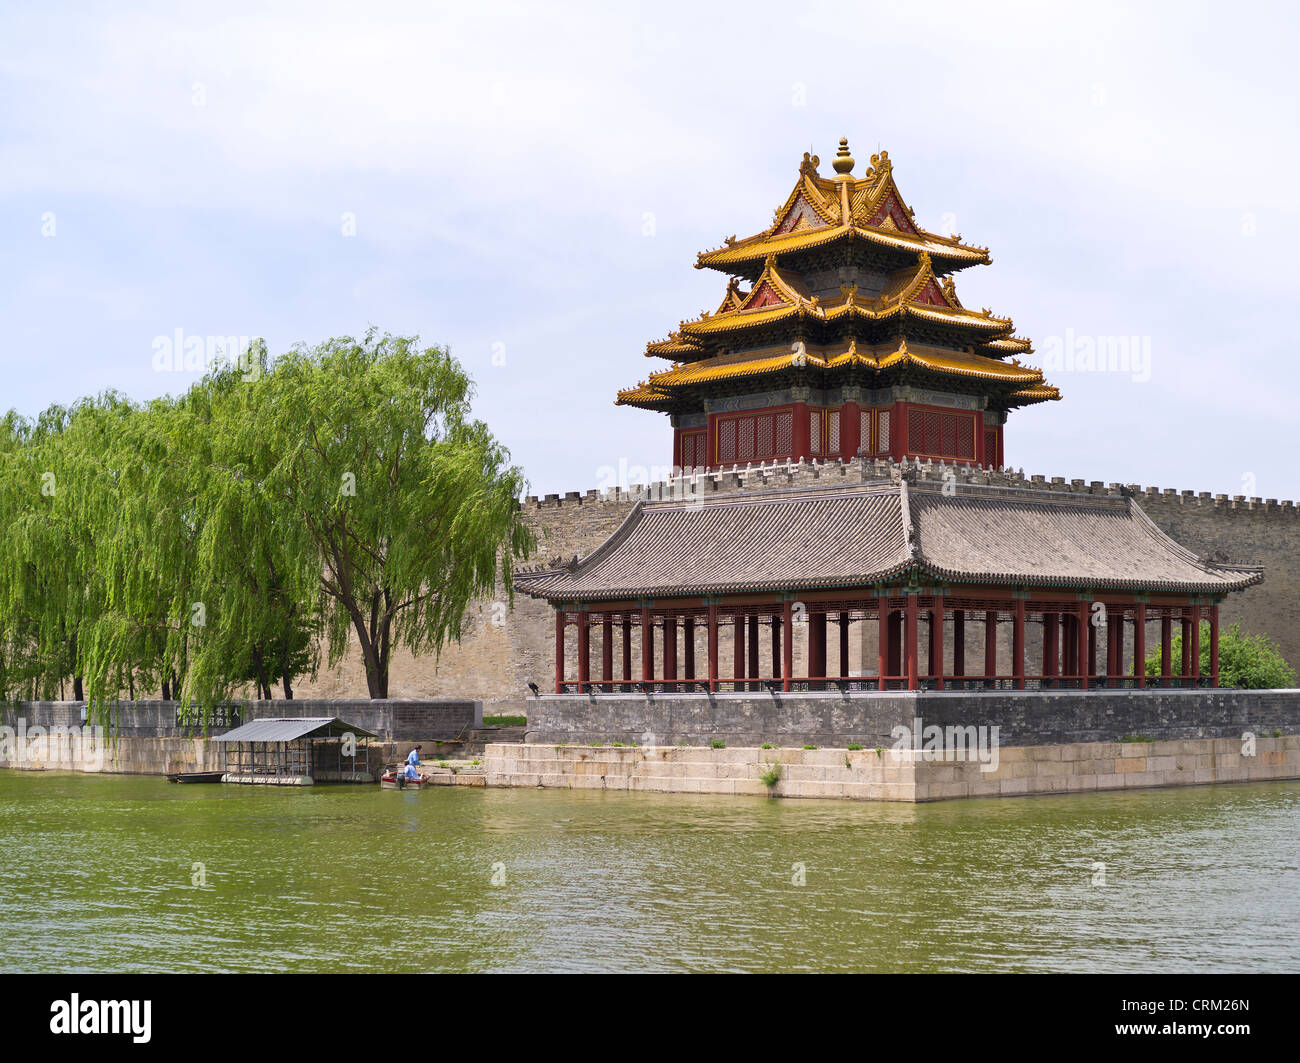 Watch Tower and The Moat. North-East Corner. The Forbidden City. Beijing. China. - Stock Image